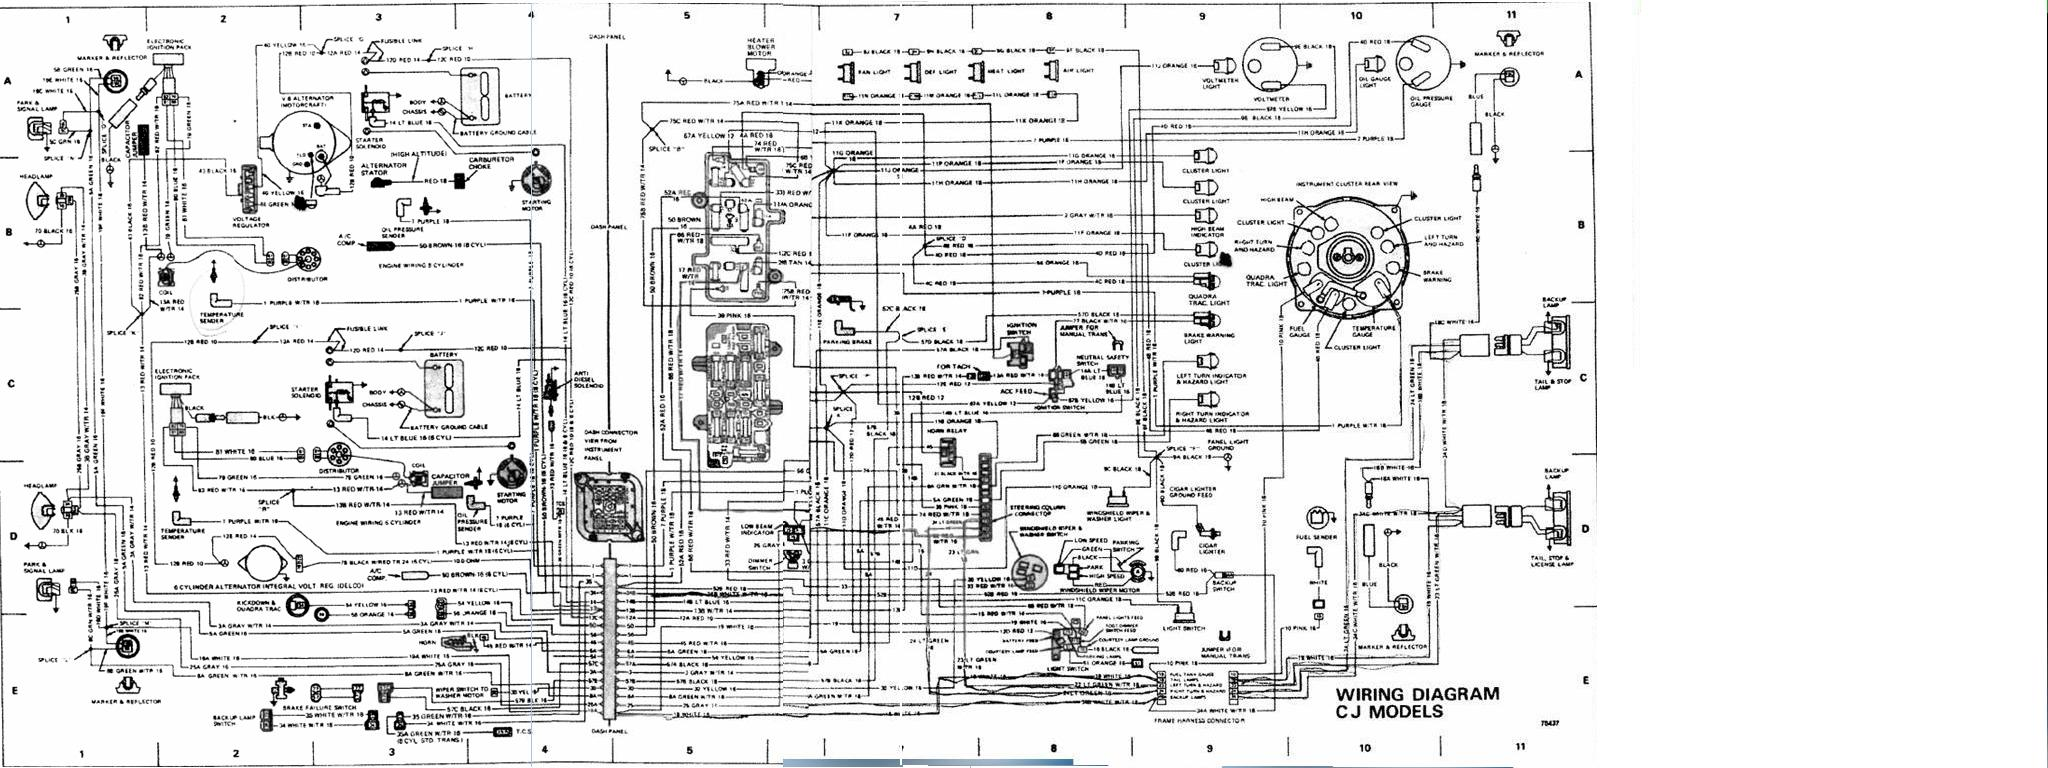 1983 cj7 wiring diagram wiring diagram fascinating Jeep CJ7 Fuse Box Diagram